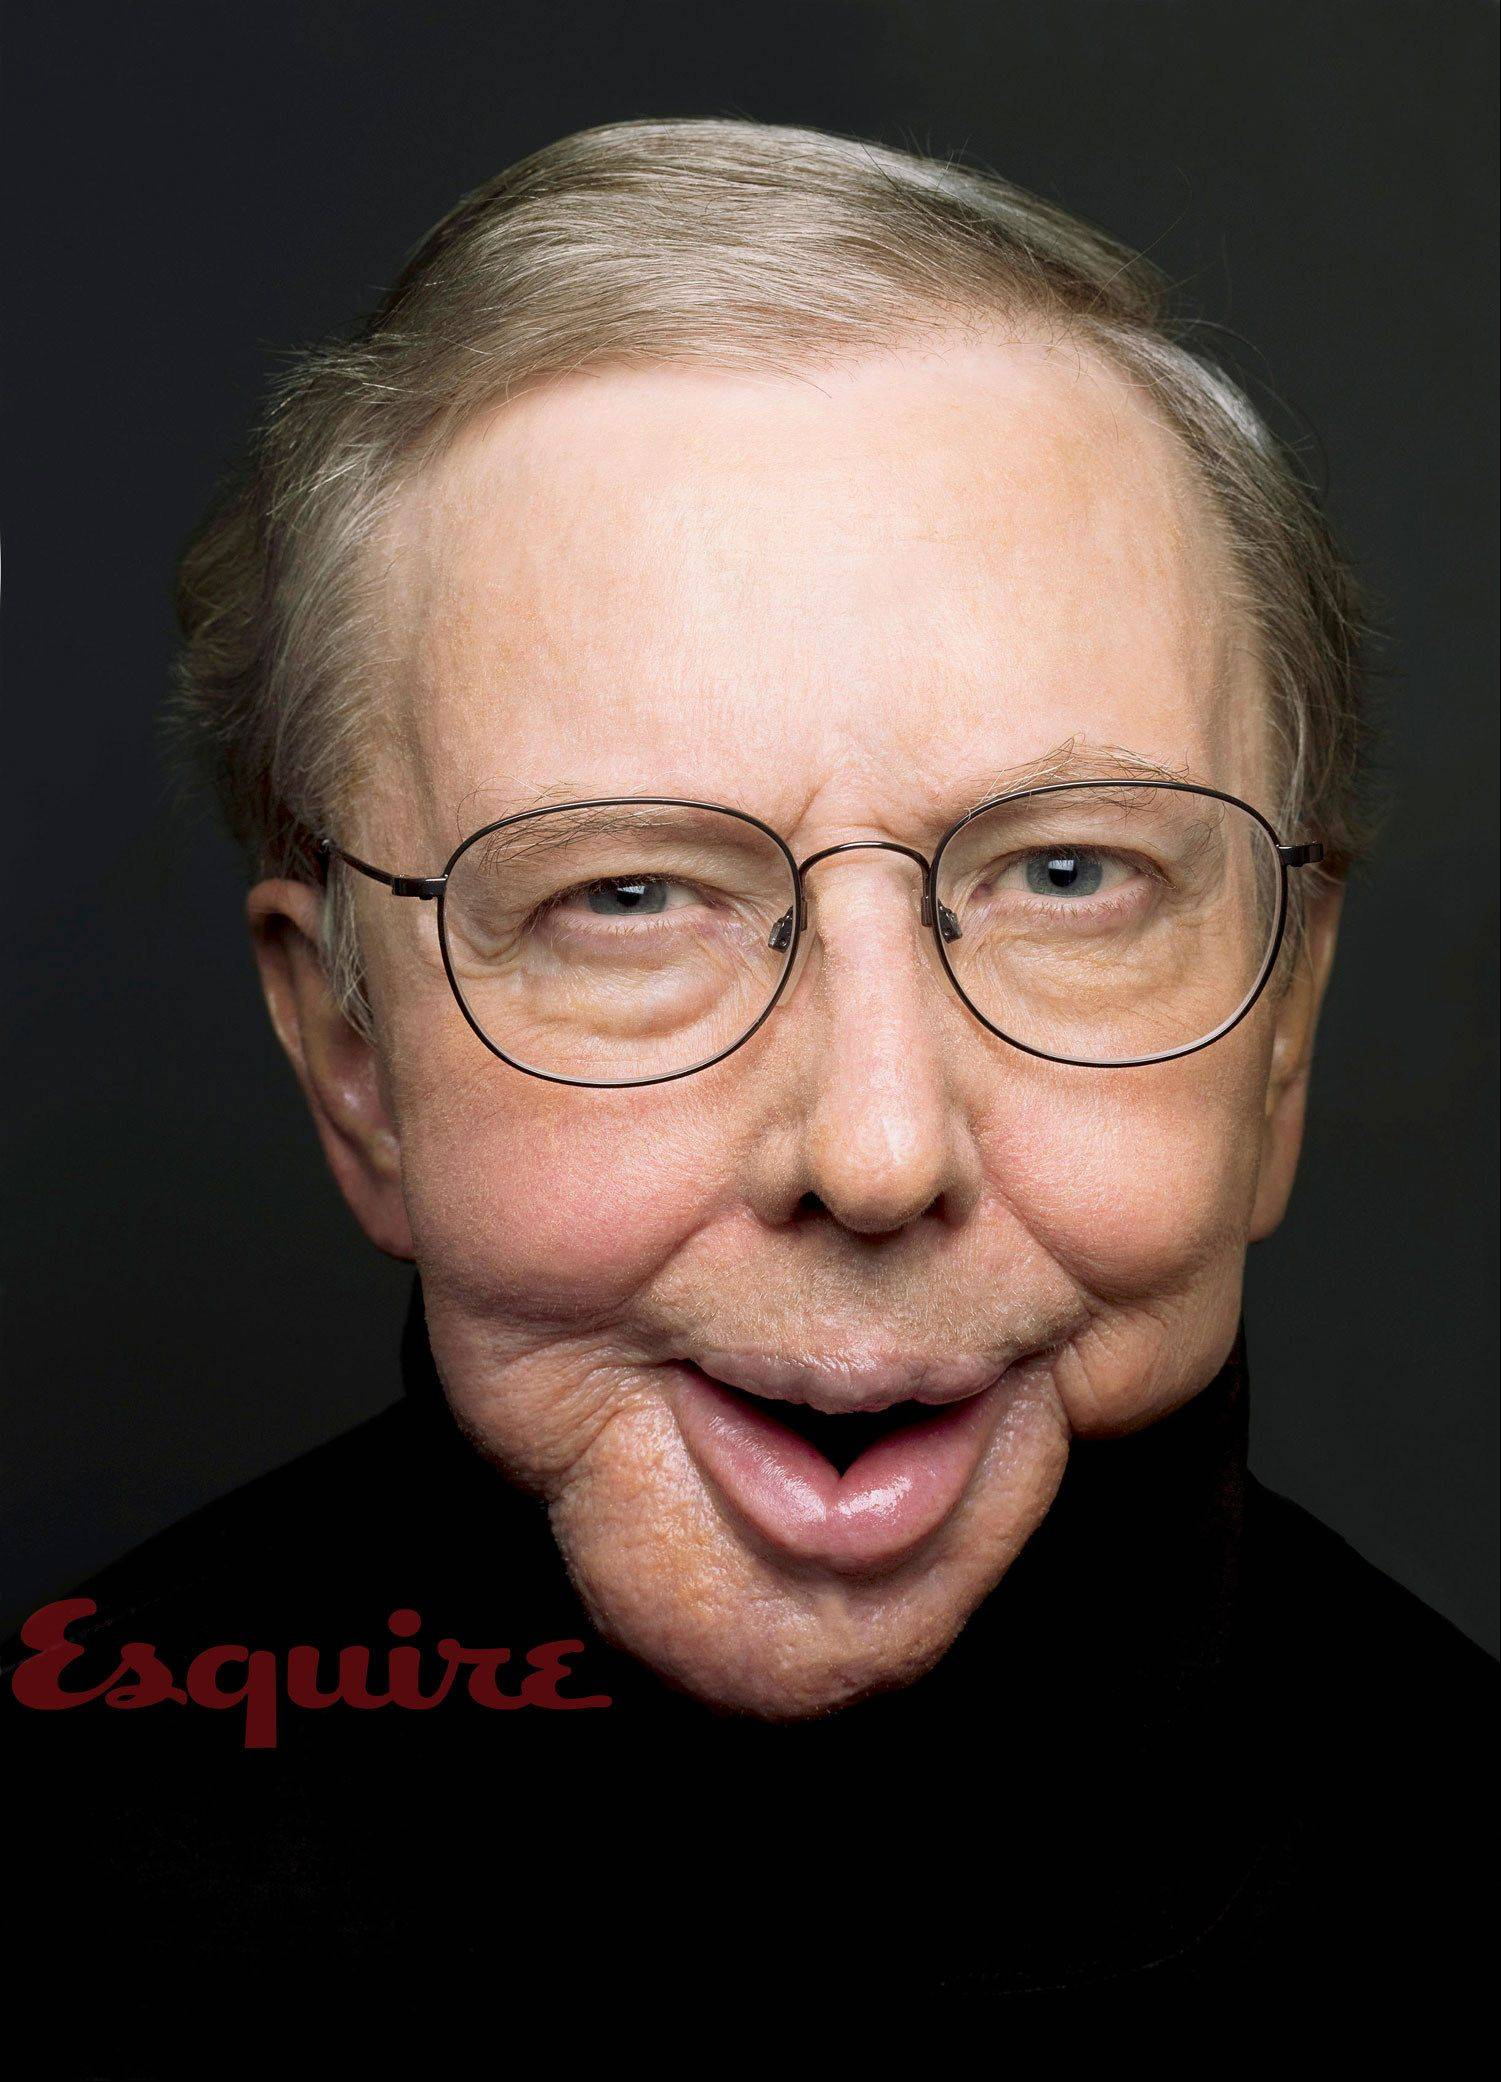 In this undated image released by Esquire magazine, film critic Roger Ebert is shown in the March 2010 issue of Esquire magazine, available on newsstands nationwide on Feb. 16.